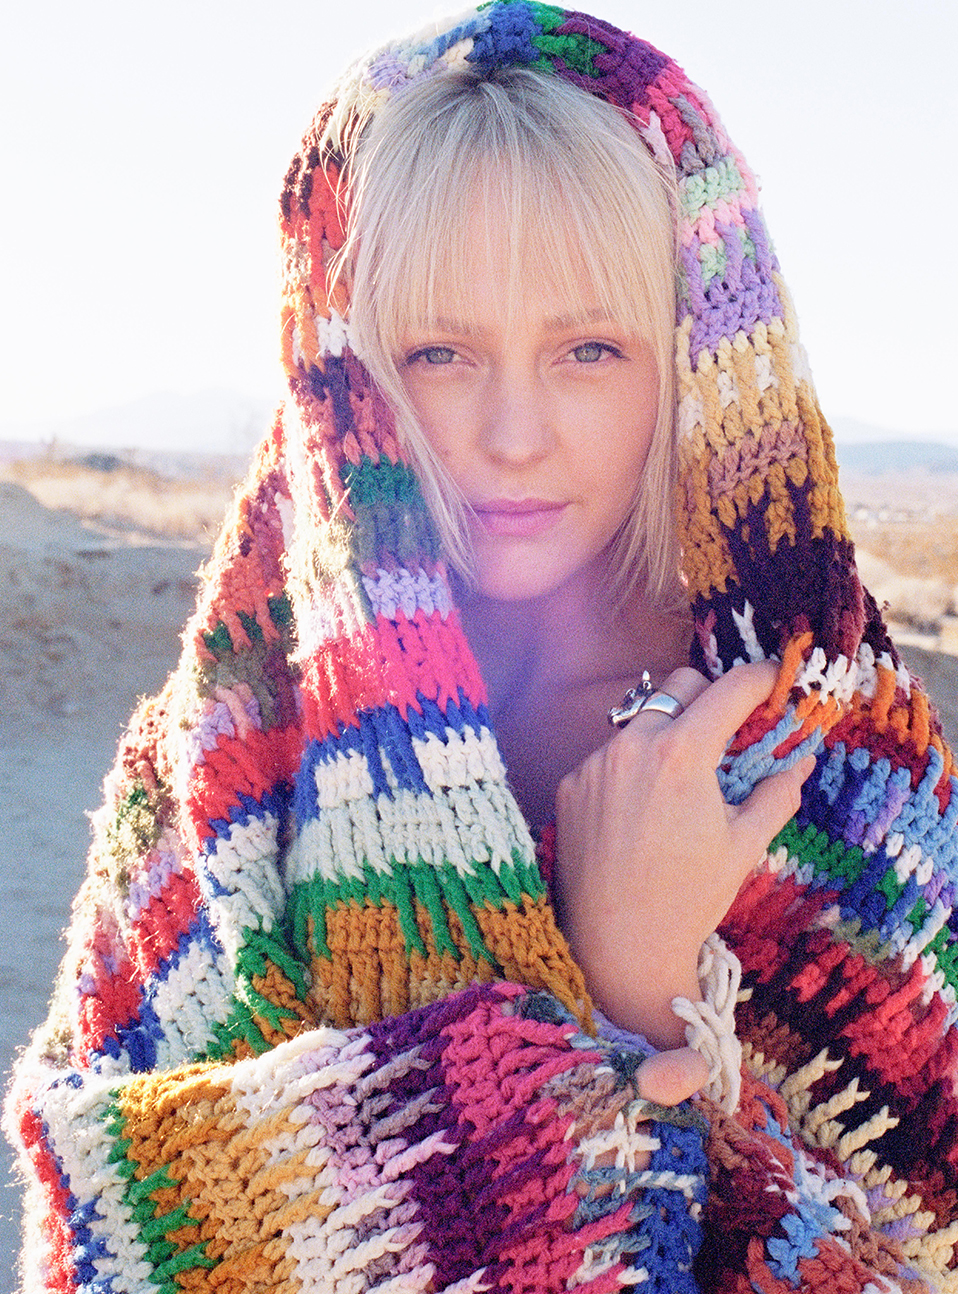 4-lauramarling-plaid-crochet-ludivineem